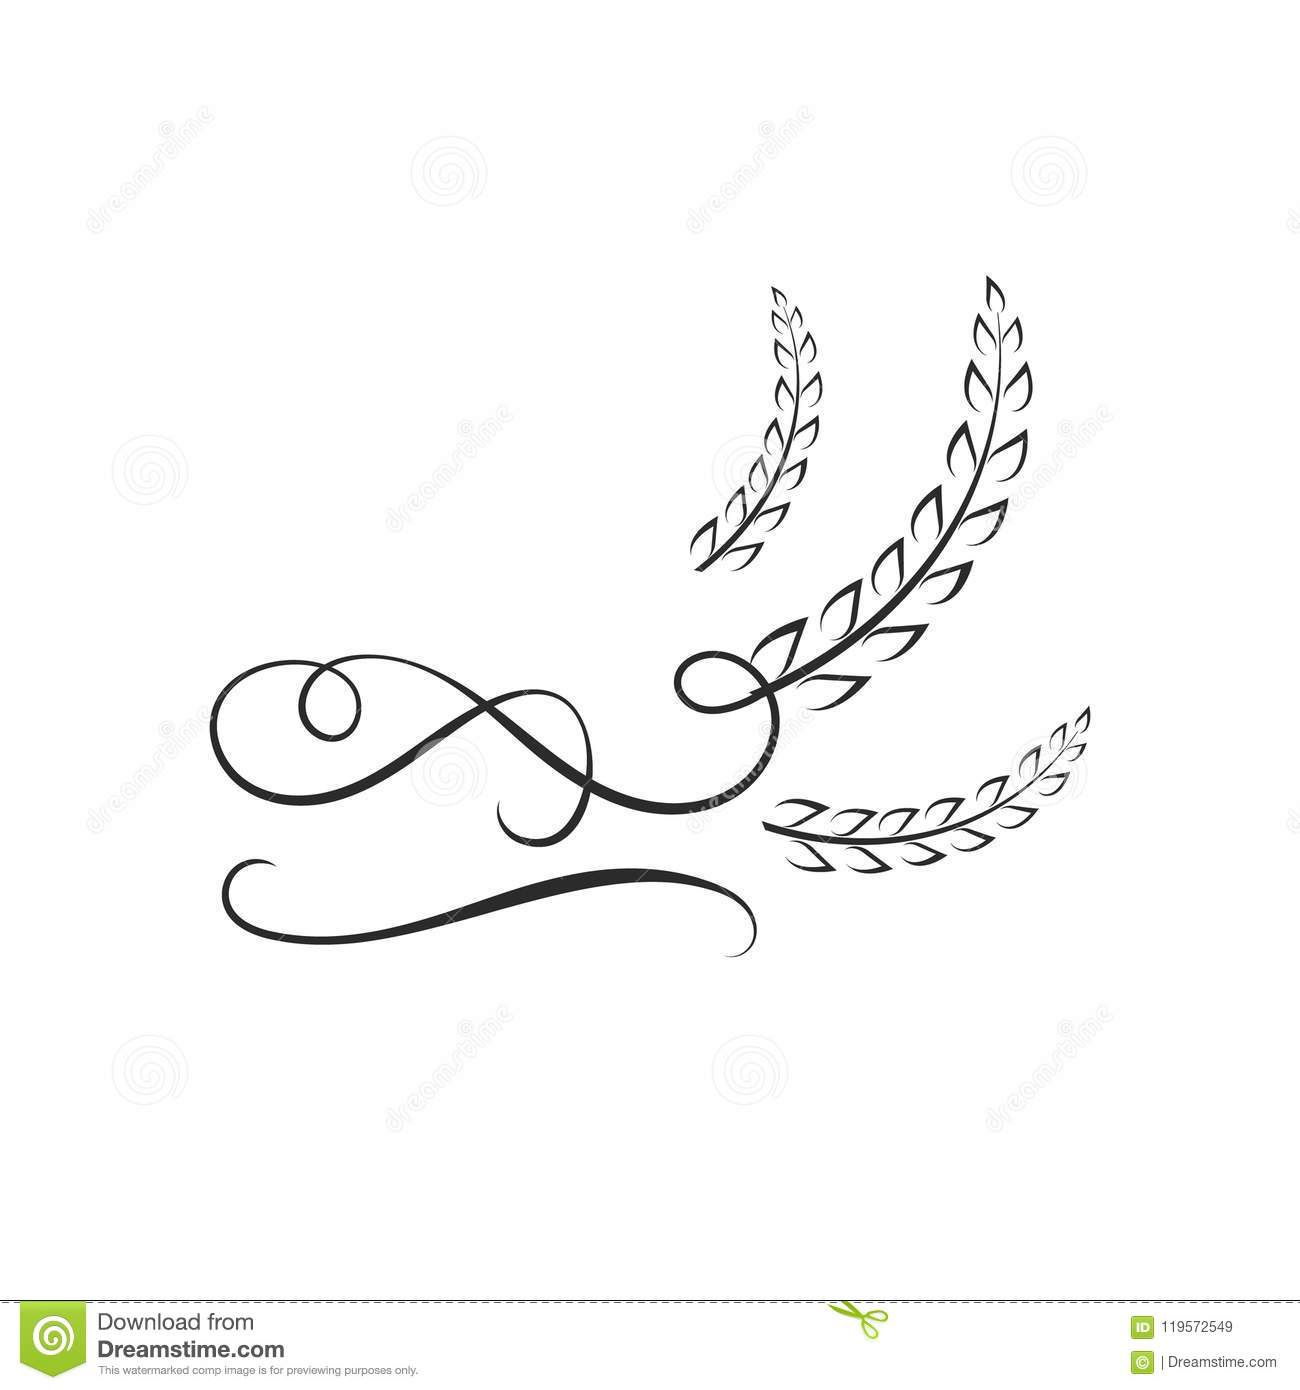 vector logo template rice with calligraphic swirls wheat icon